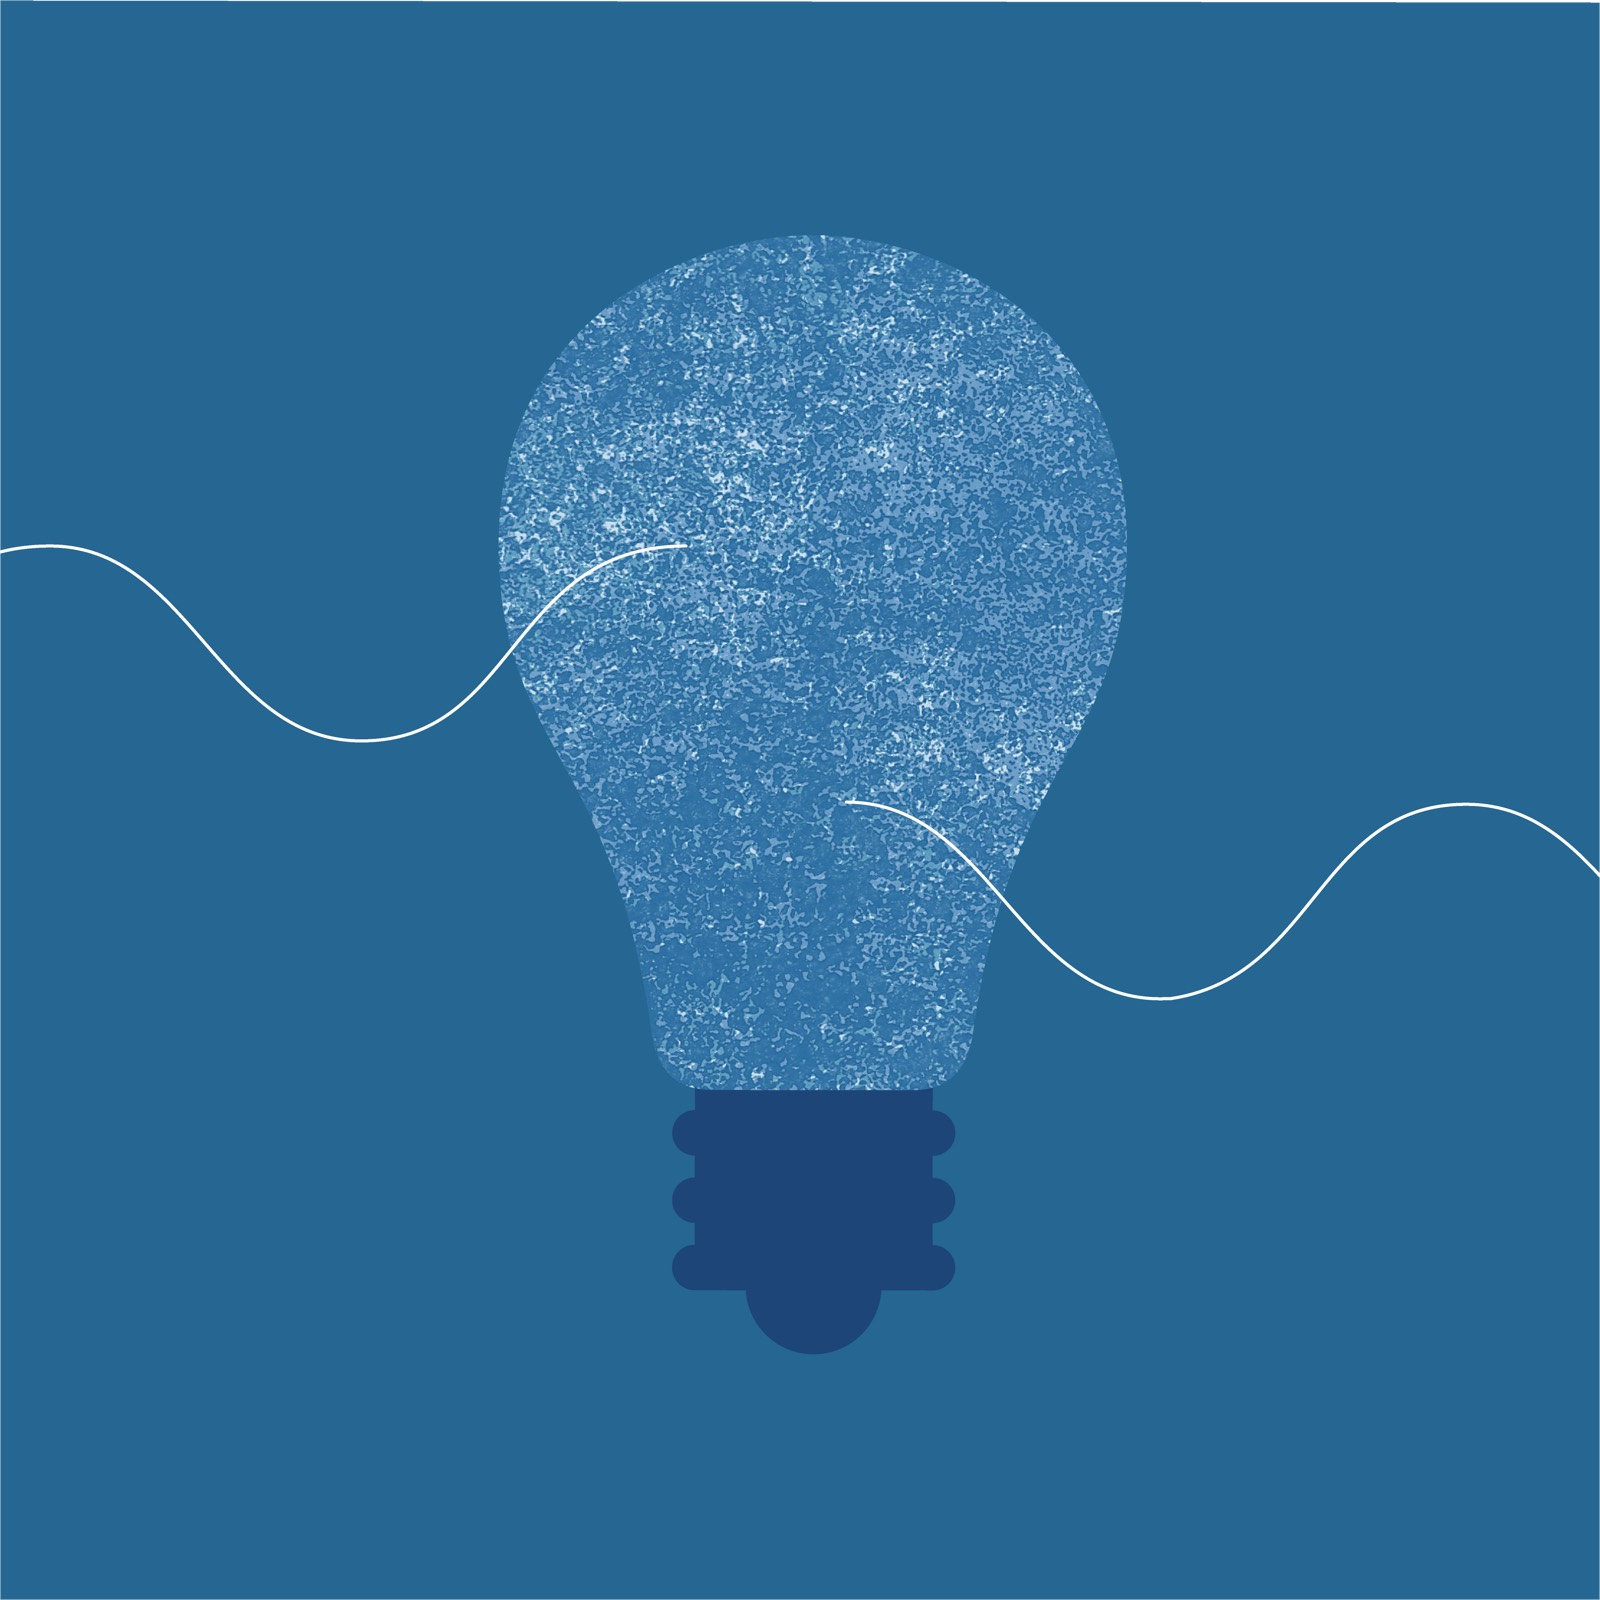 Abstract illustration of light bulb that signifies innovation in the workplace.